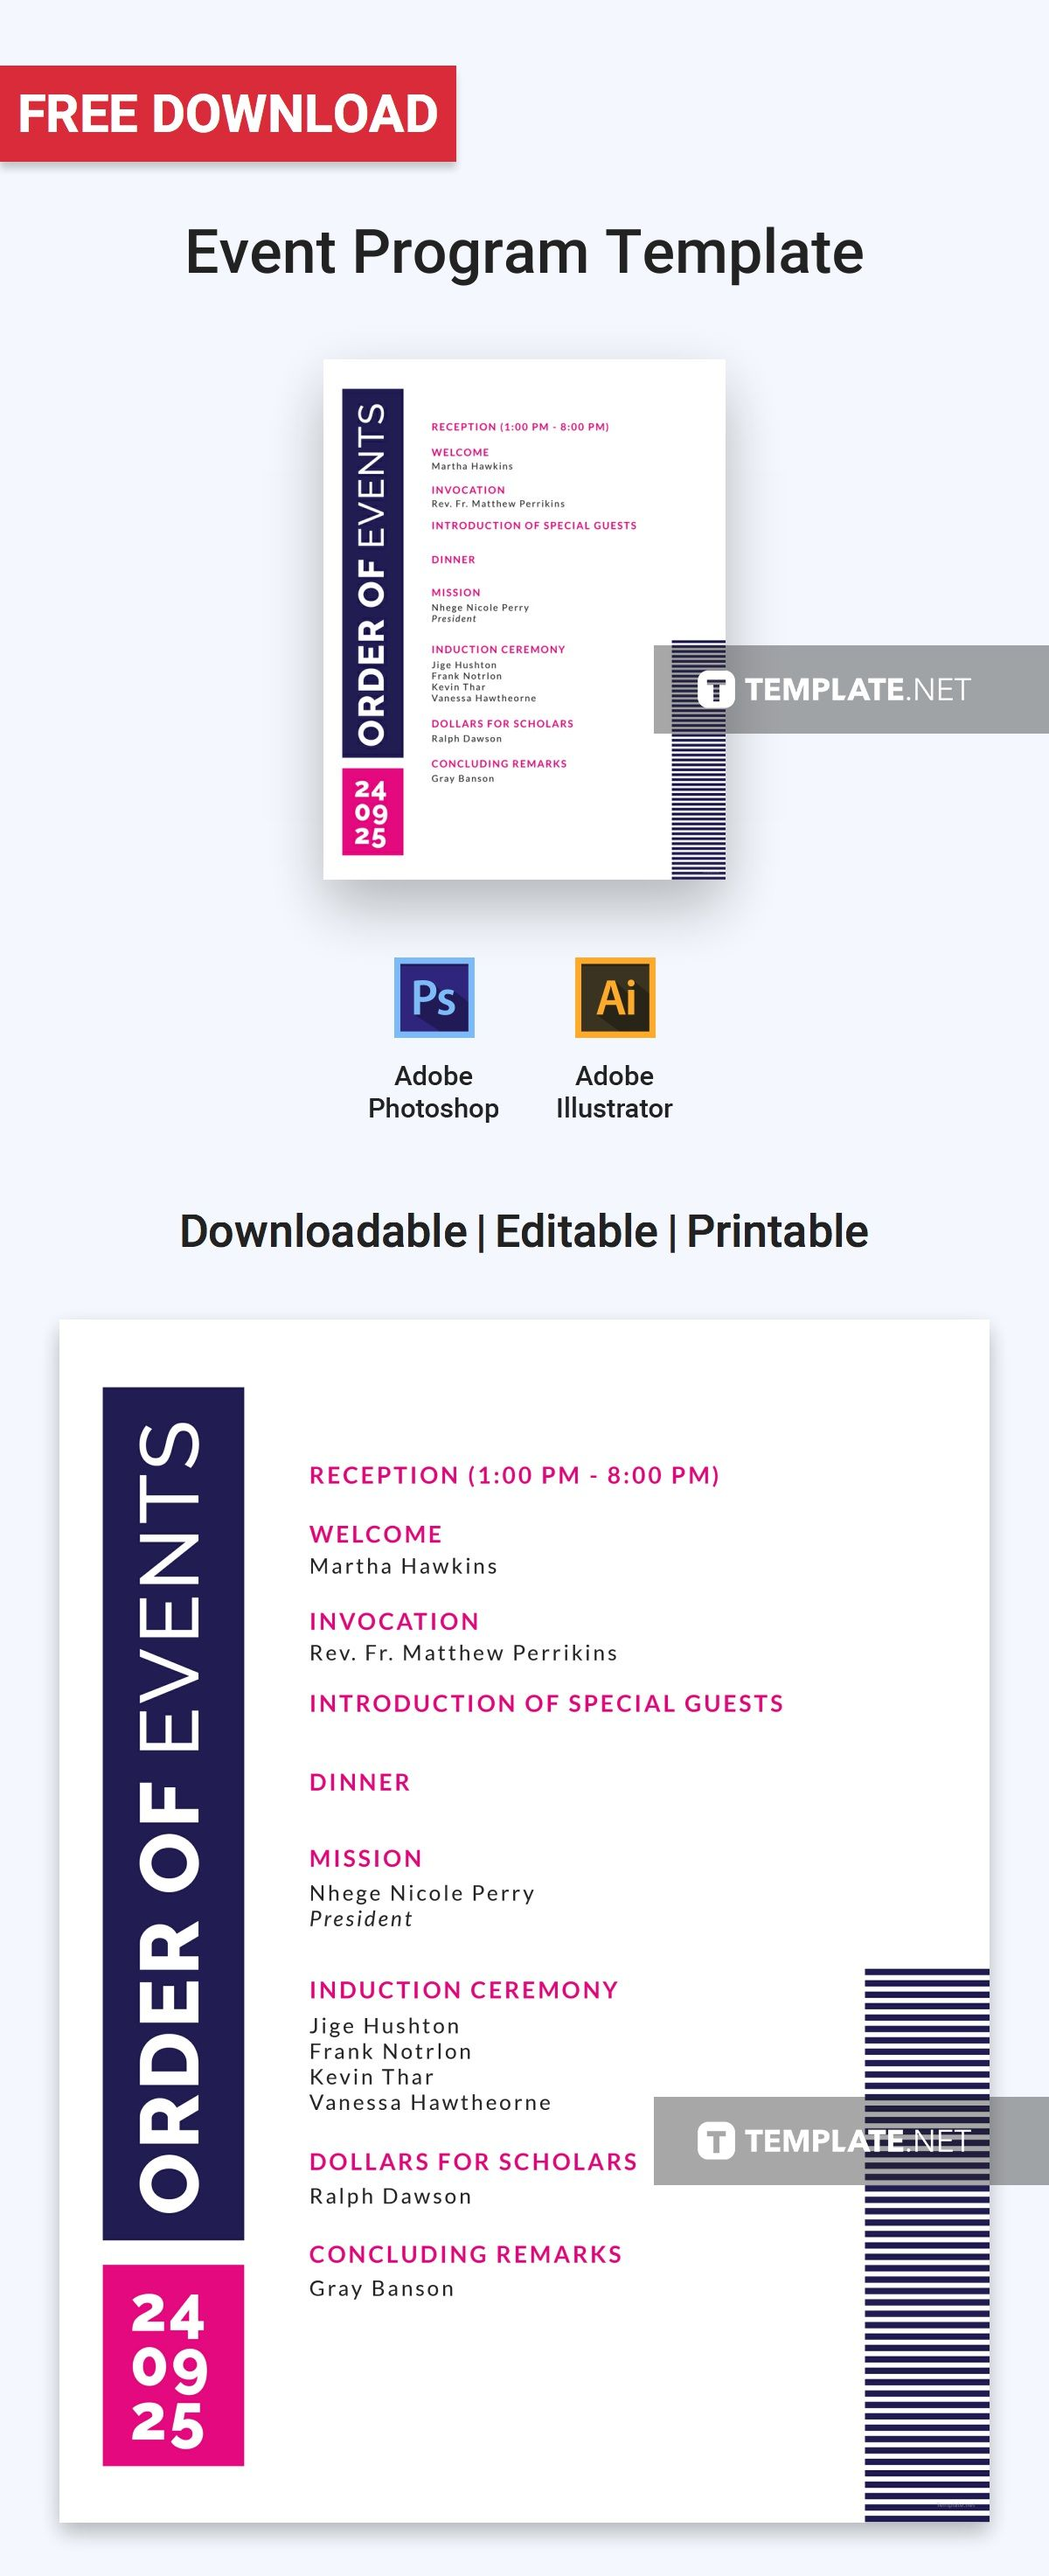 Free Event Program Template For Personal Business Use Professionally Designed Templates